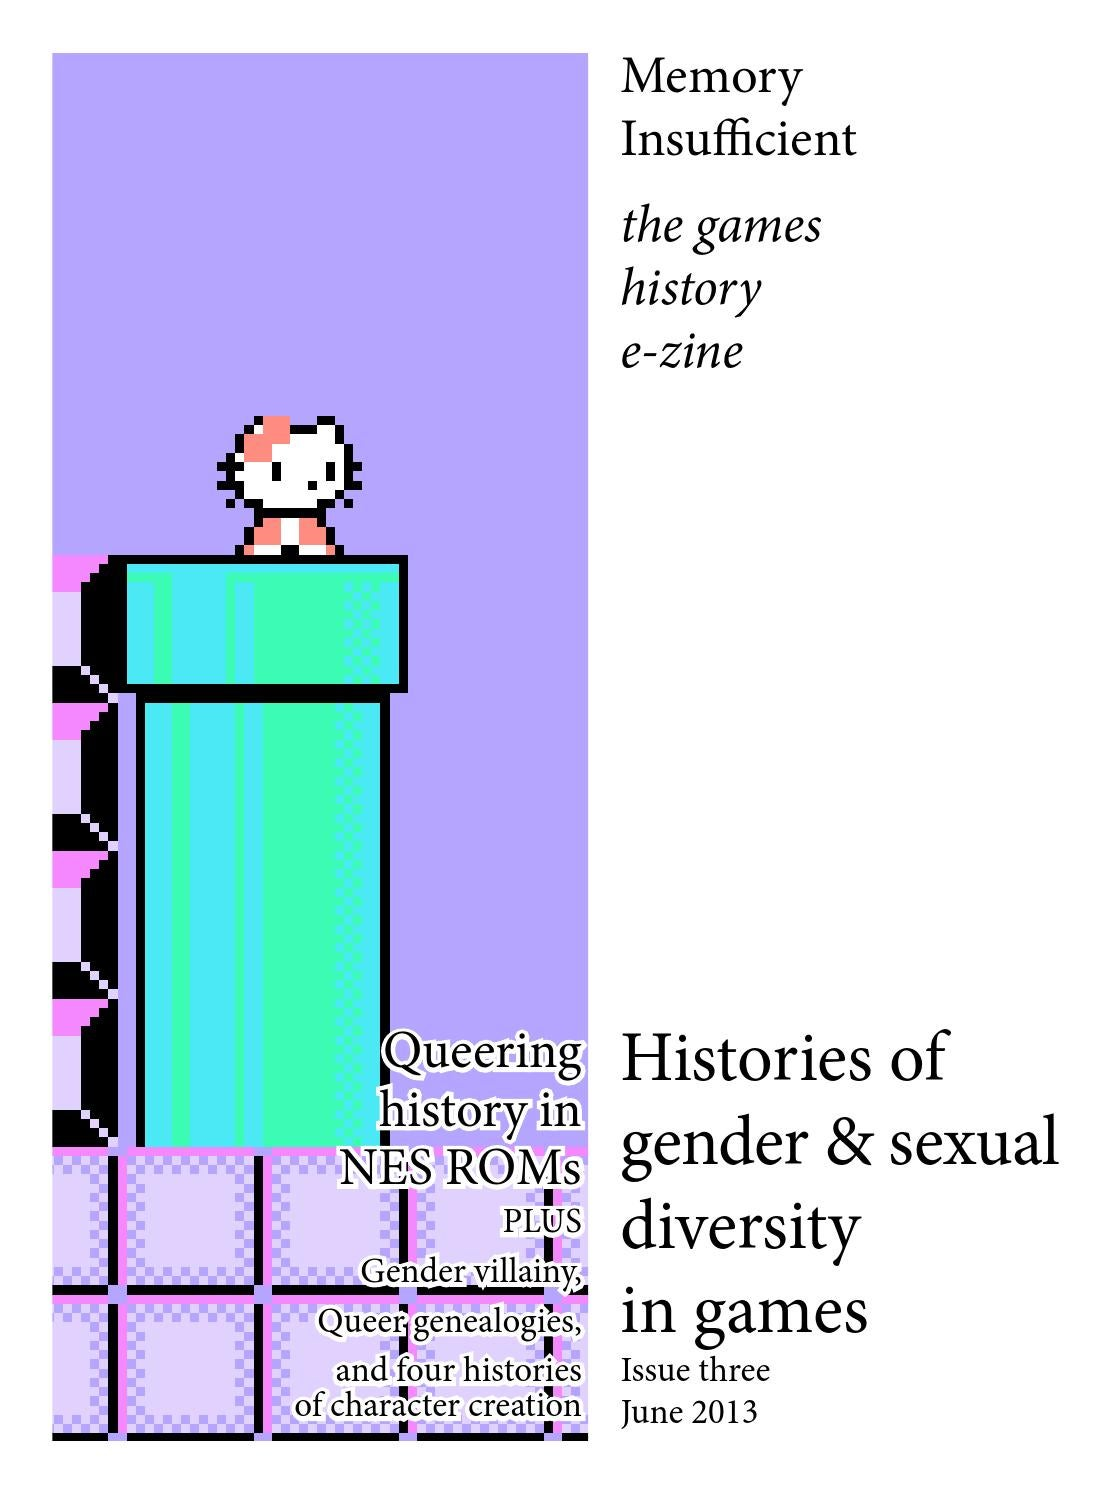 Histories of gender and sexual diversity in games